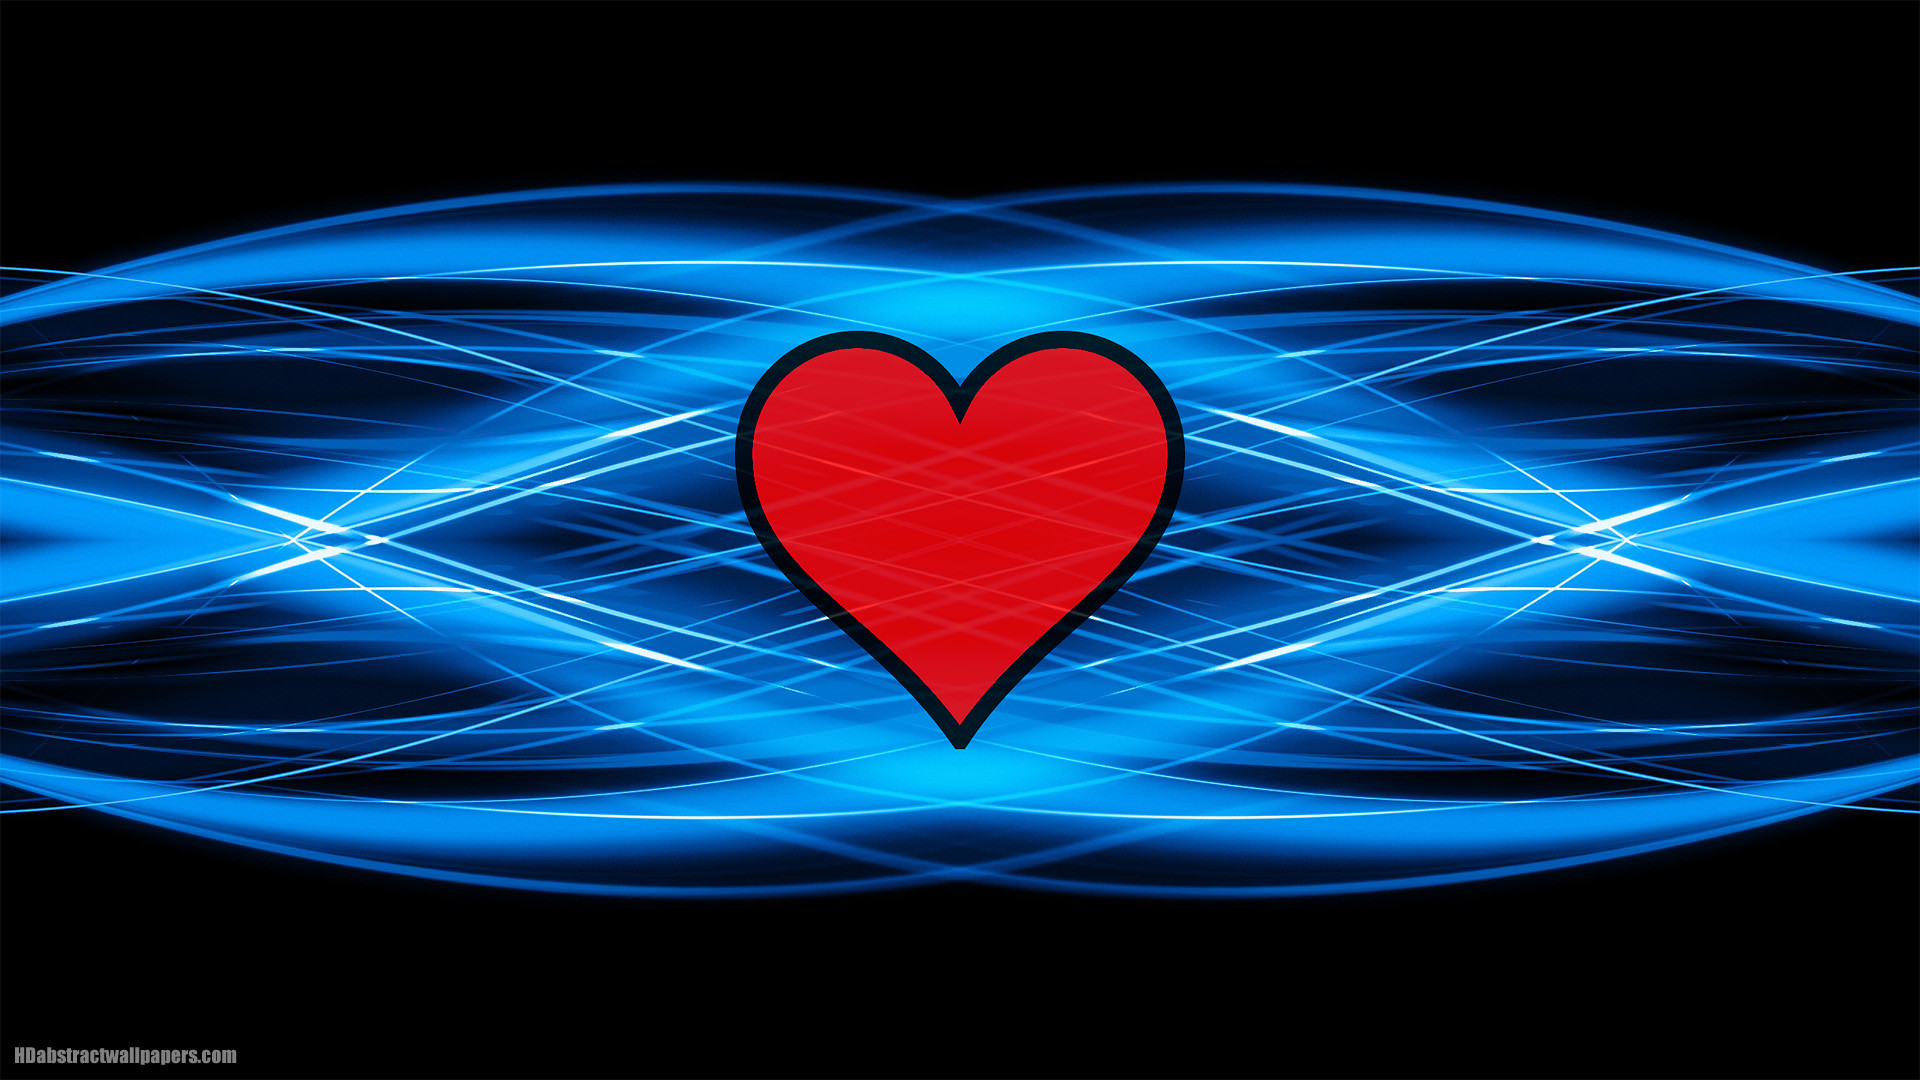 Black blue abstract background with red love heart in the middle, very  clean and modern abstract wallpaper. In HD quality resolution 1920×1080.